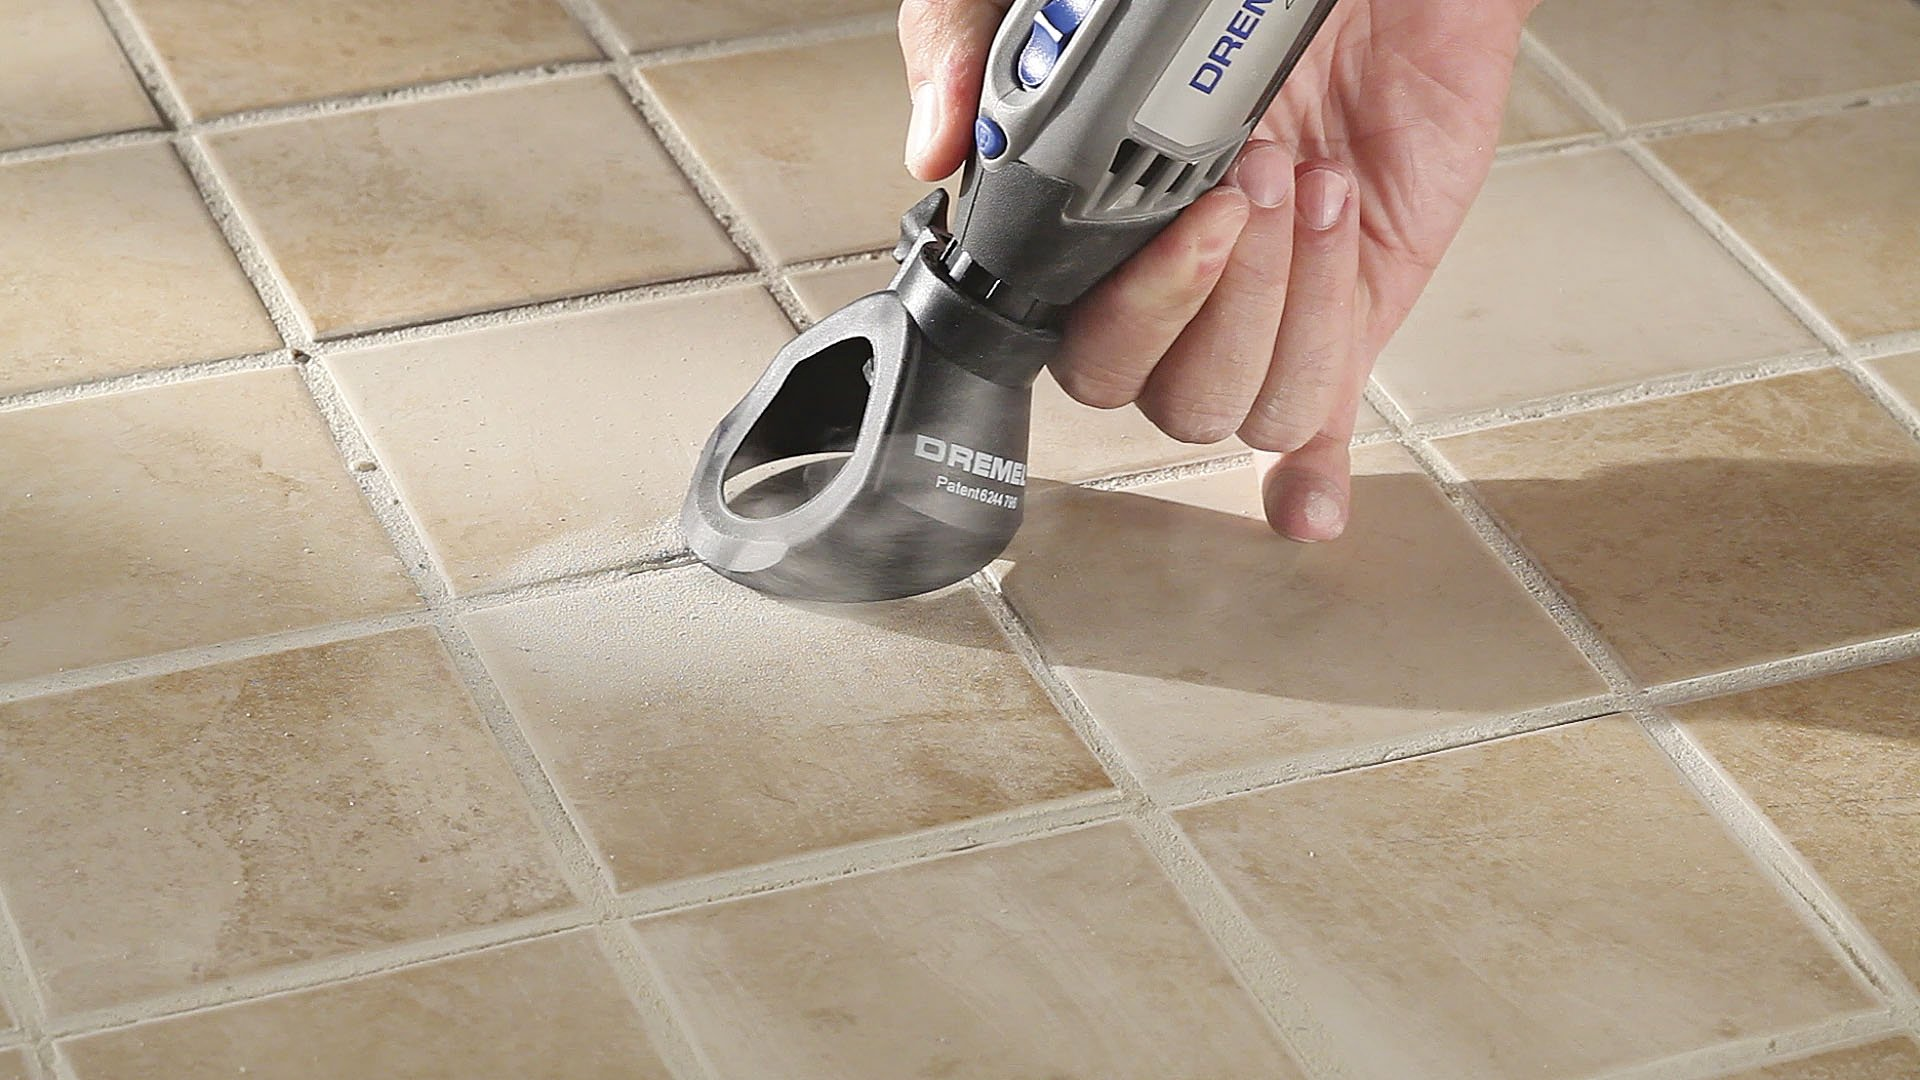 Dremel 568 Grout Removal Kit